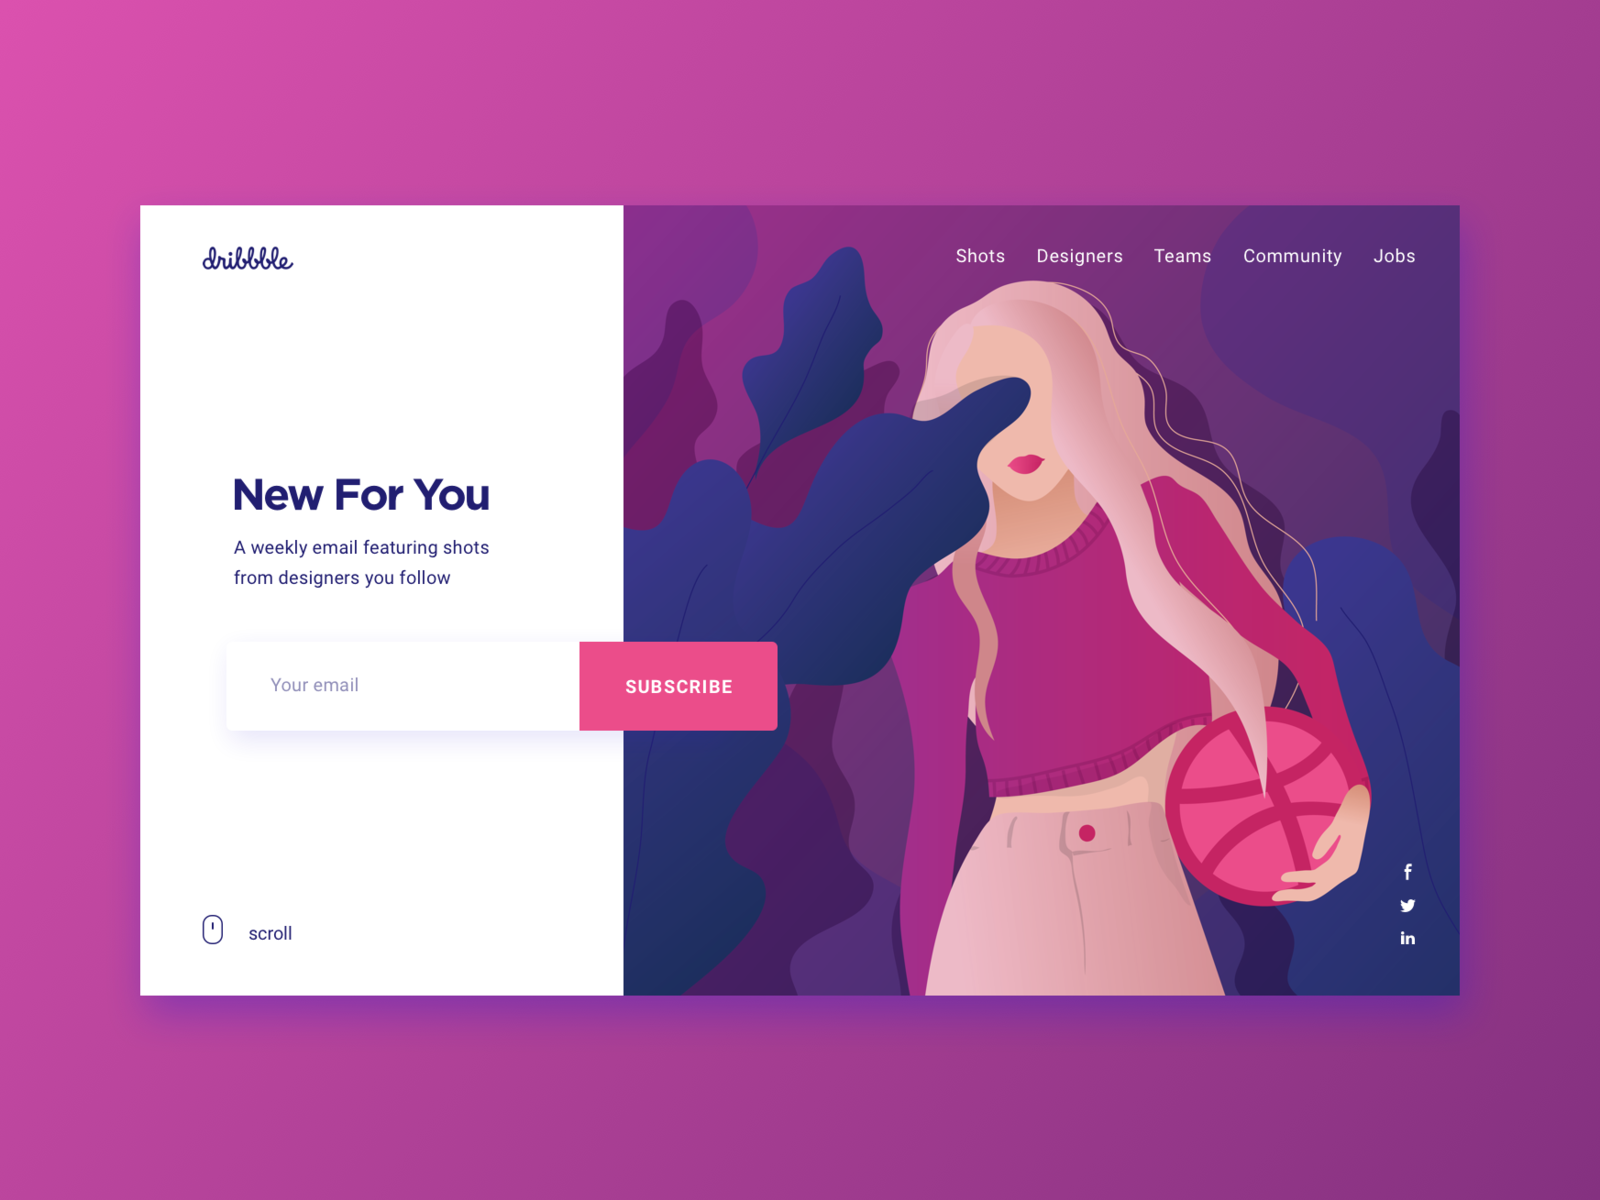 Daily UI #026 - Subscribe daily ui challenge daily ui illustration art featuring shots dribbble shot sport basketball girl plant dribbble app dribbble ball play email subscription email dribbble subscription dribbble newsletter news subscription box subscribe